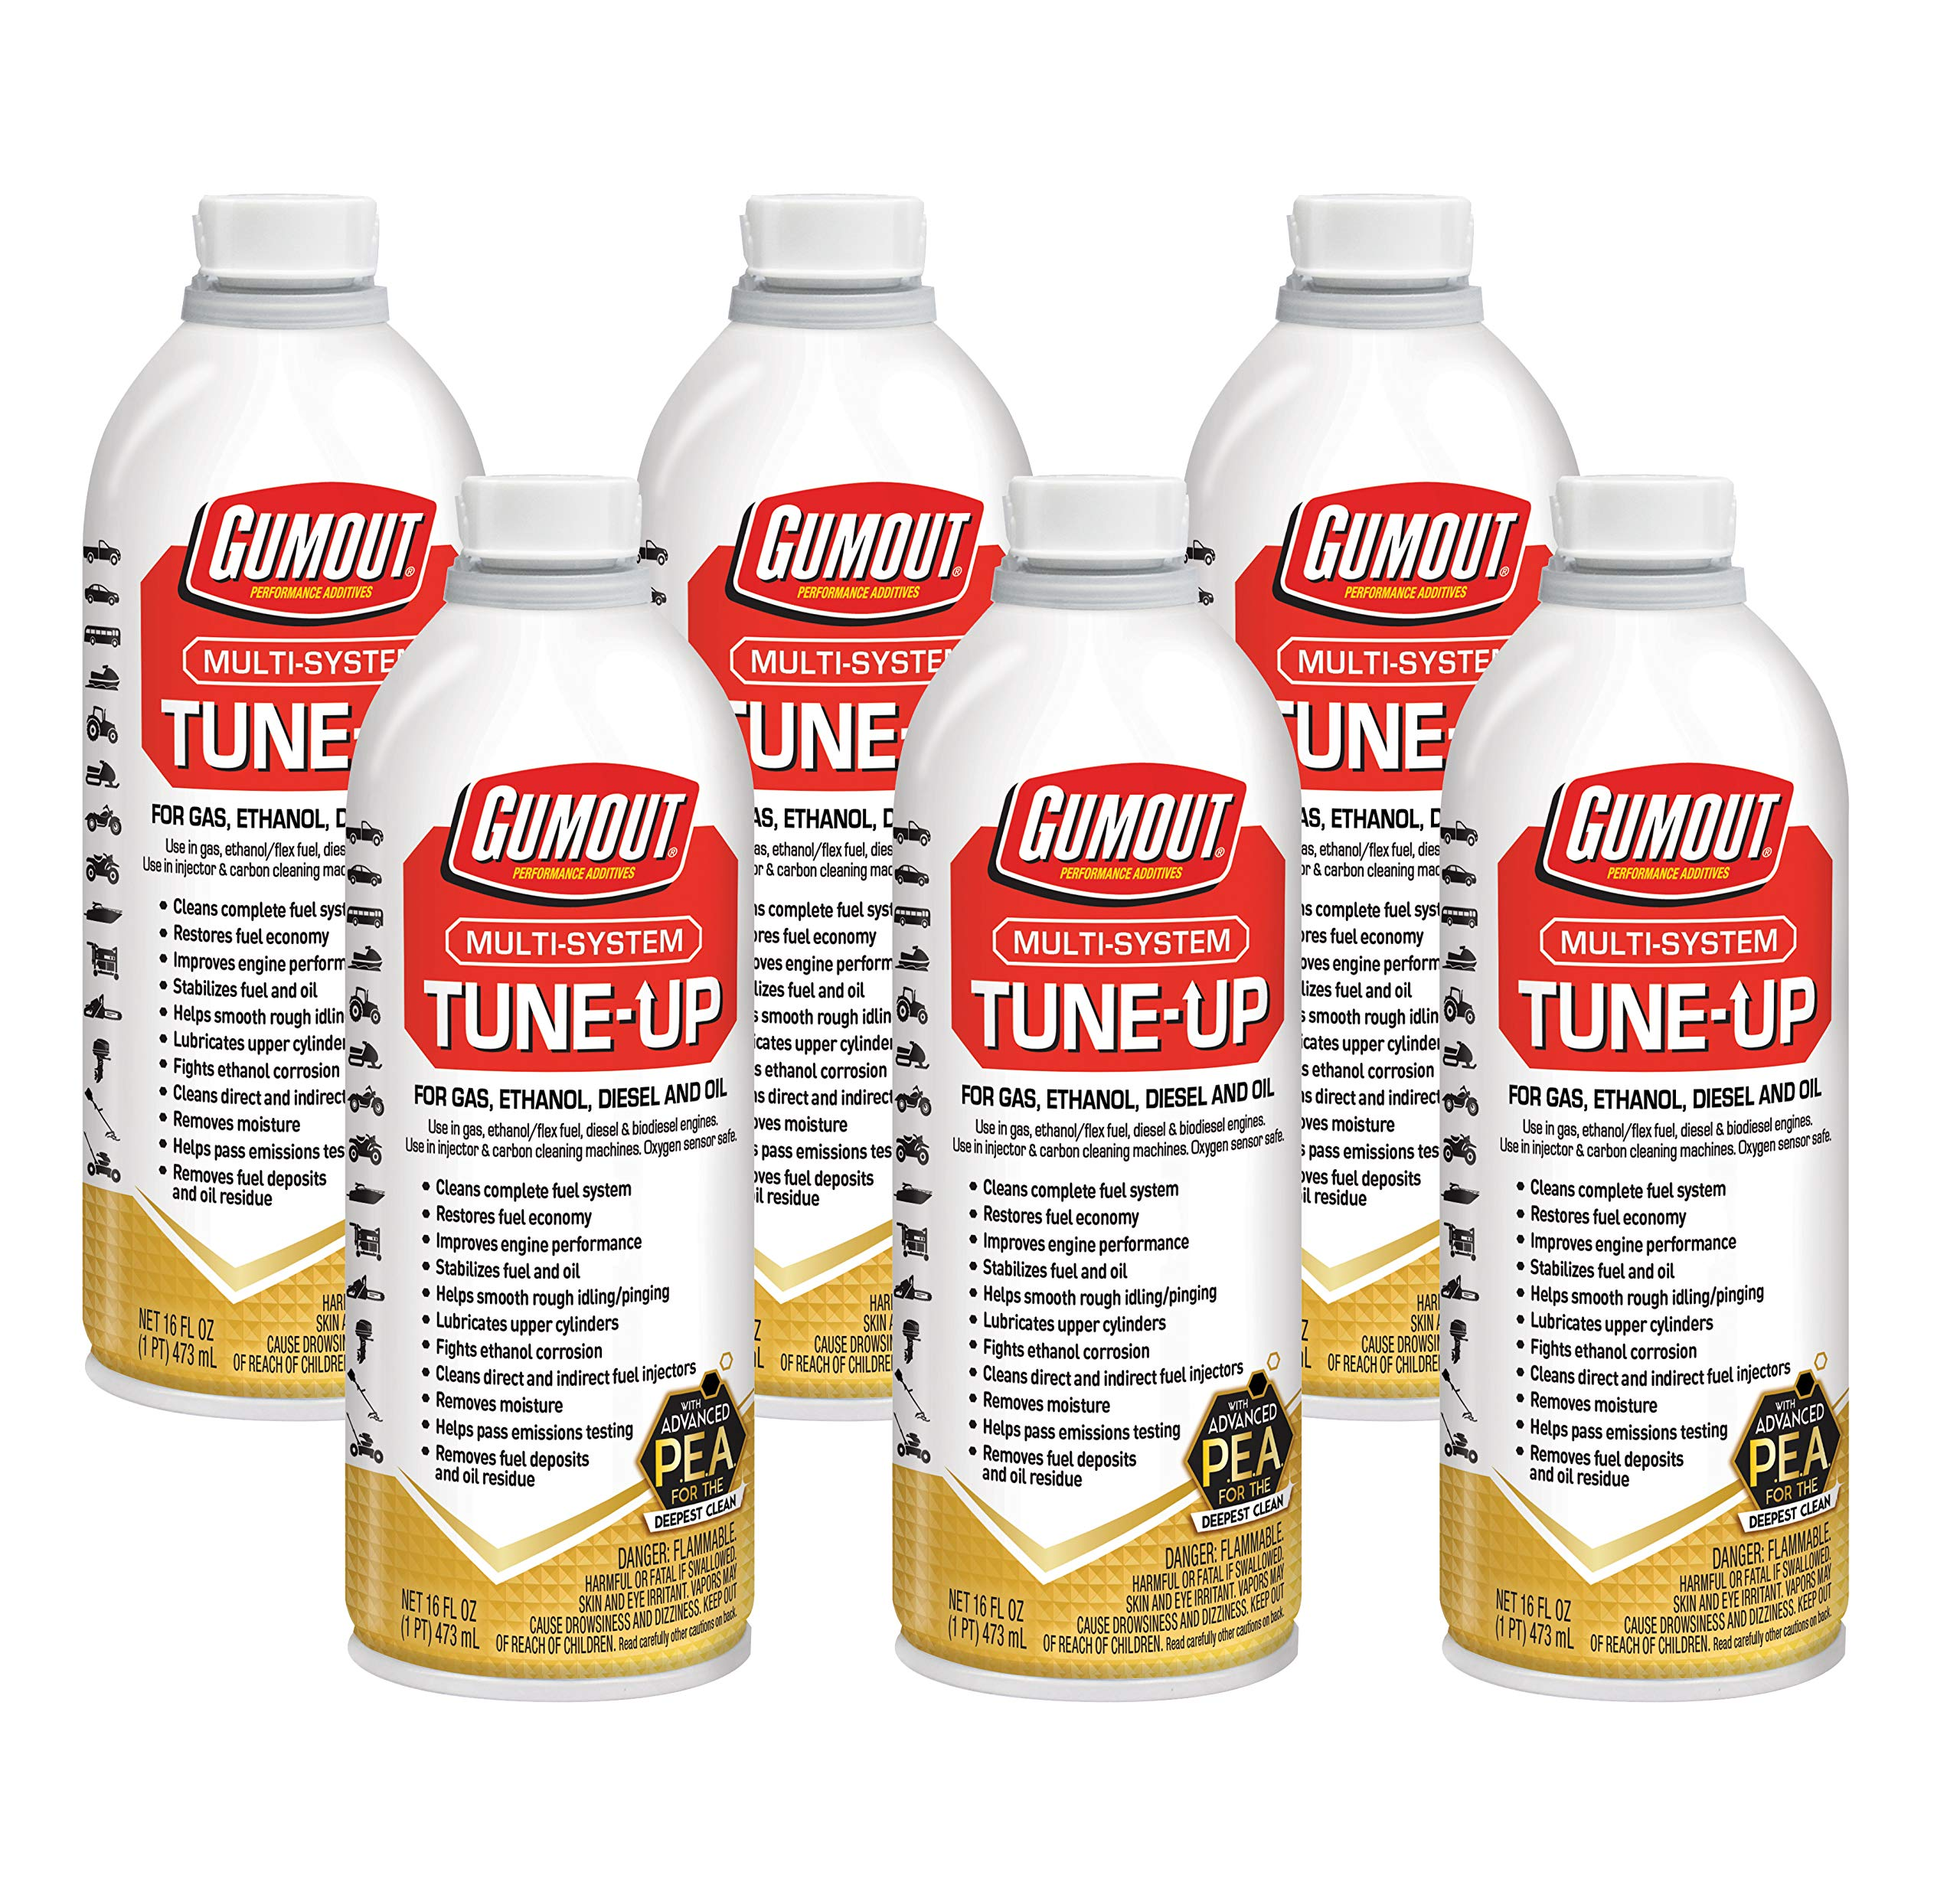 Gumout 510011 Multi-System Tune-Up, 16 oz. (Pack of 6) by Gumout